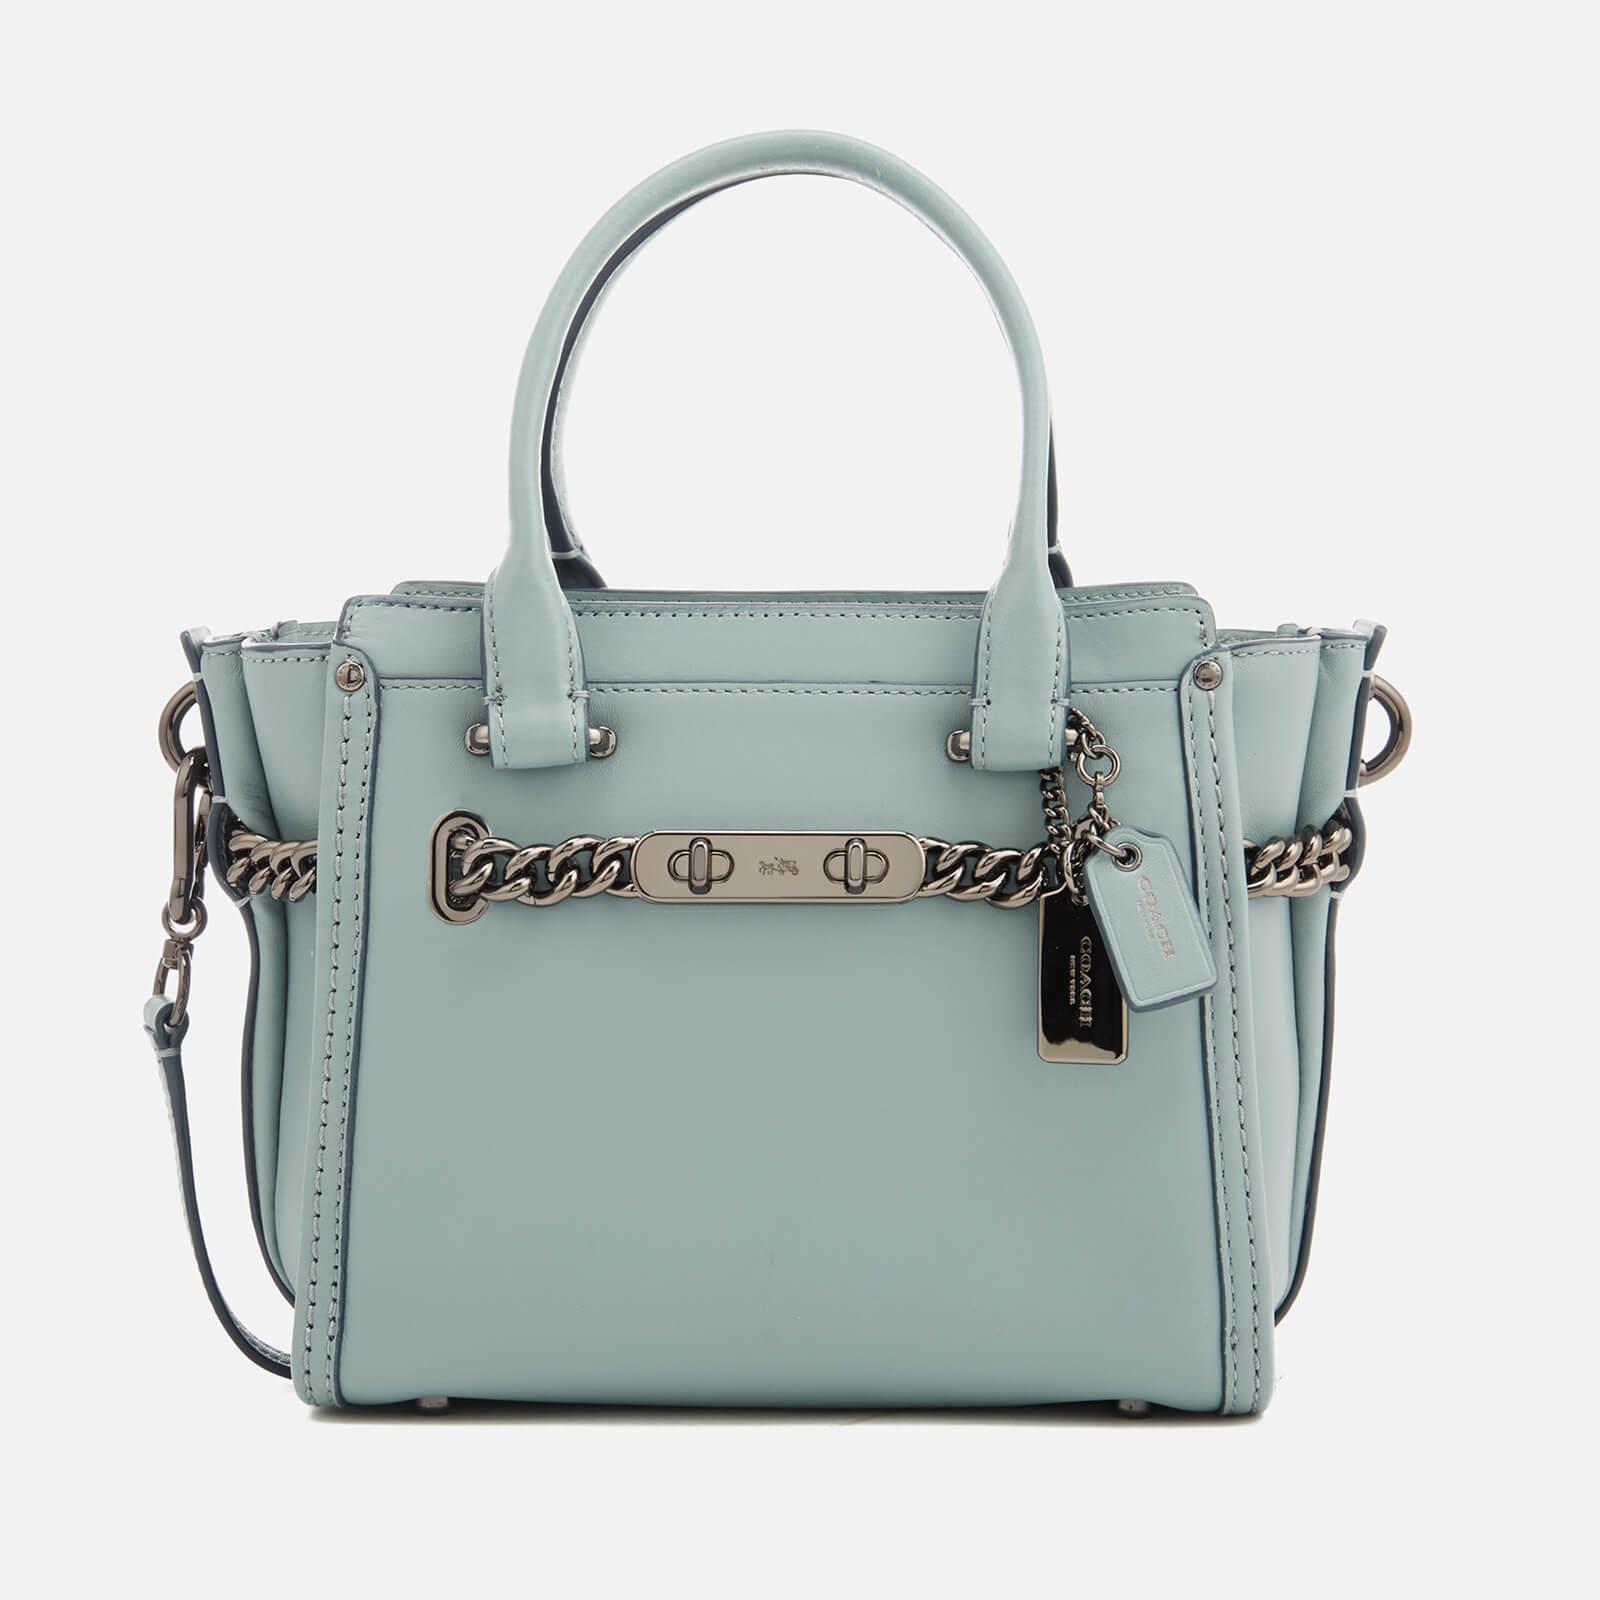 d09783e3c Coach Women's Swagger 21 Tote Bag - Cloud - Free UK Delivery over £50